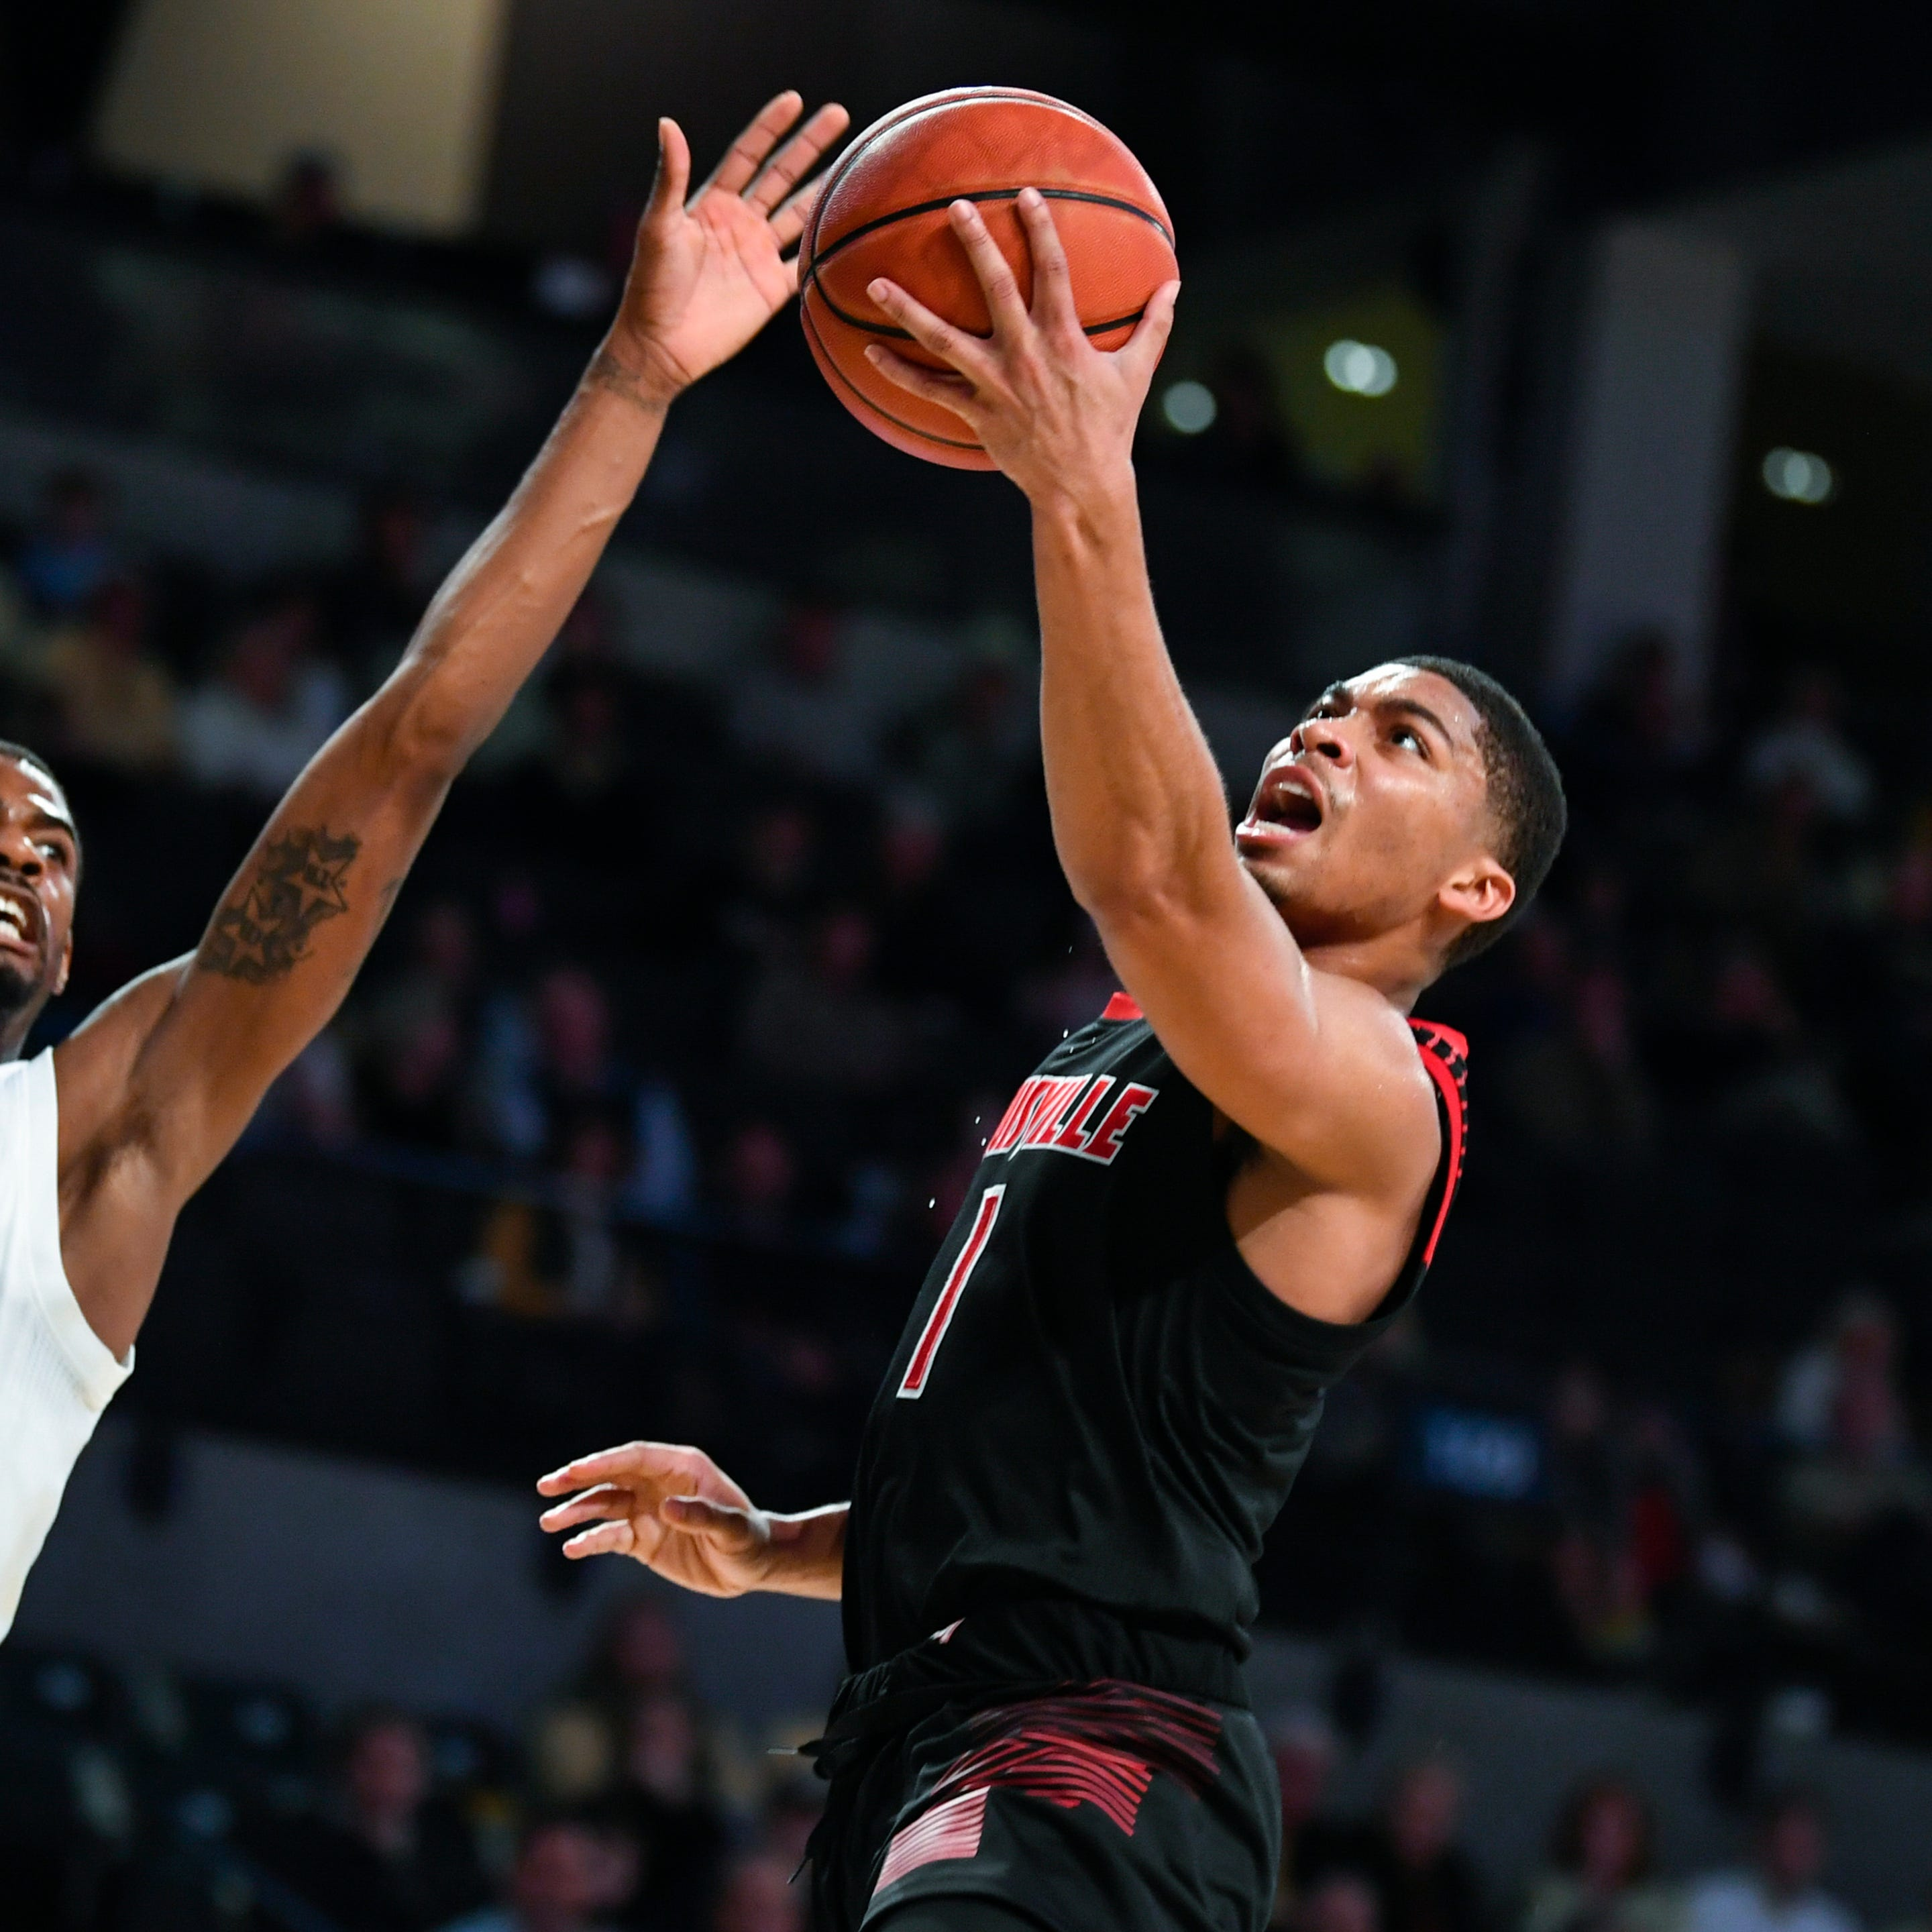 Share the love: Assists give Louisville basketball a boost in the ACC